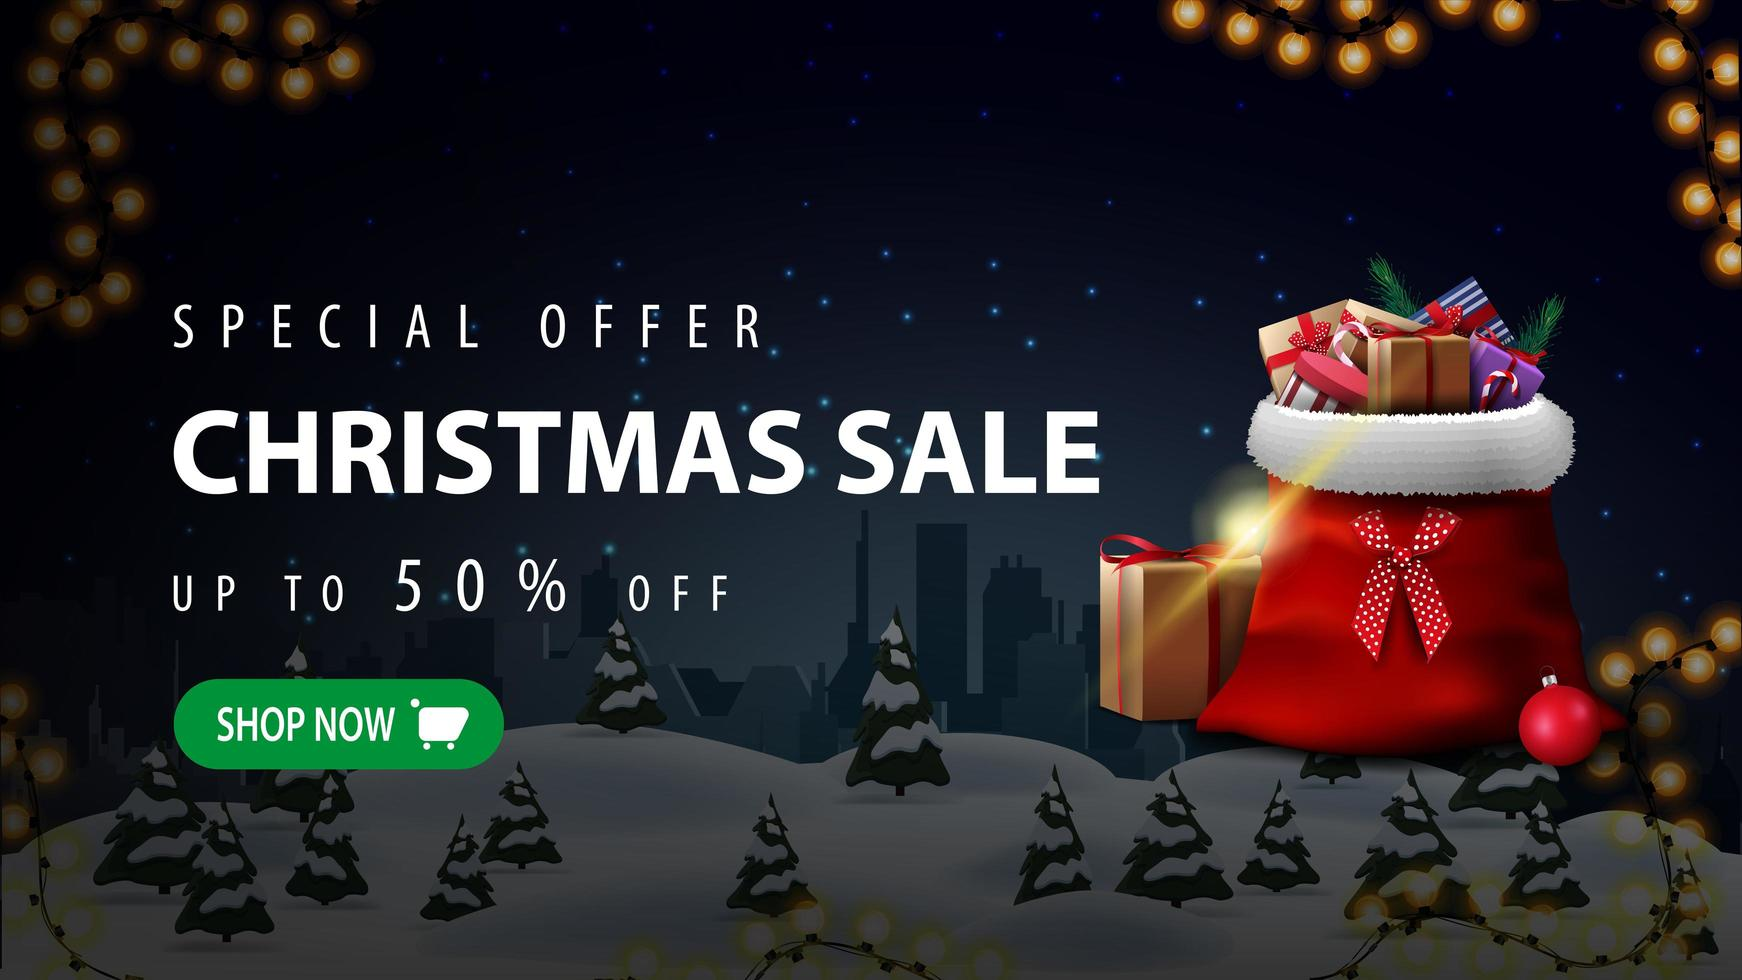 Special offer, Christmas sale, up to 50 off, beautiful discount banner with night winter landscape, silhouette city on horizontal and Santa Sleigh with presents vector